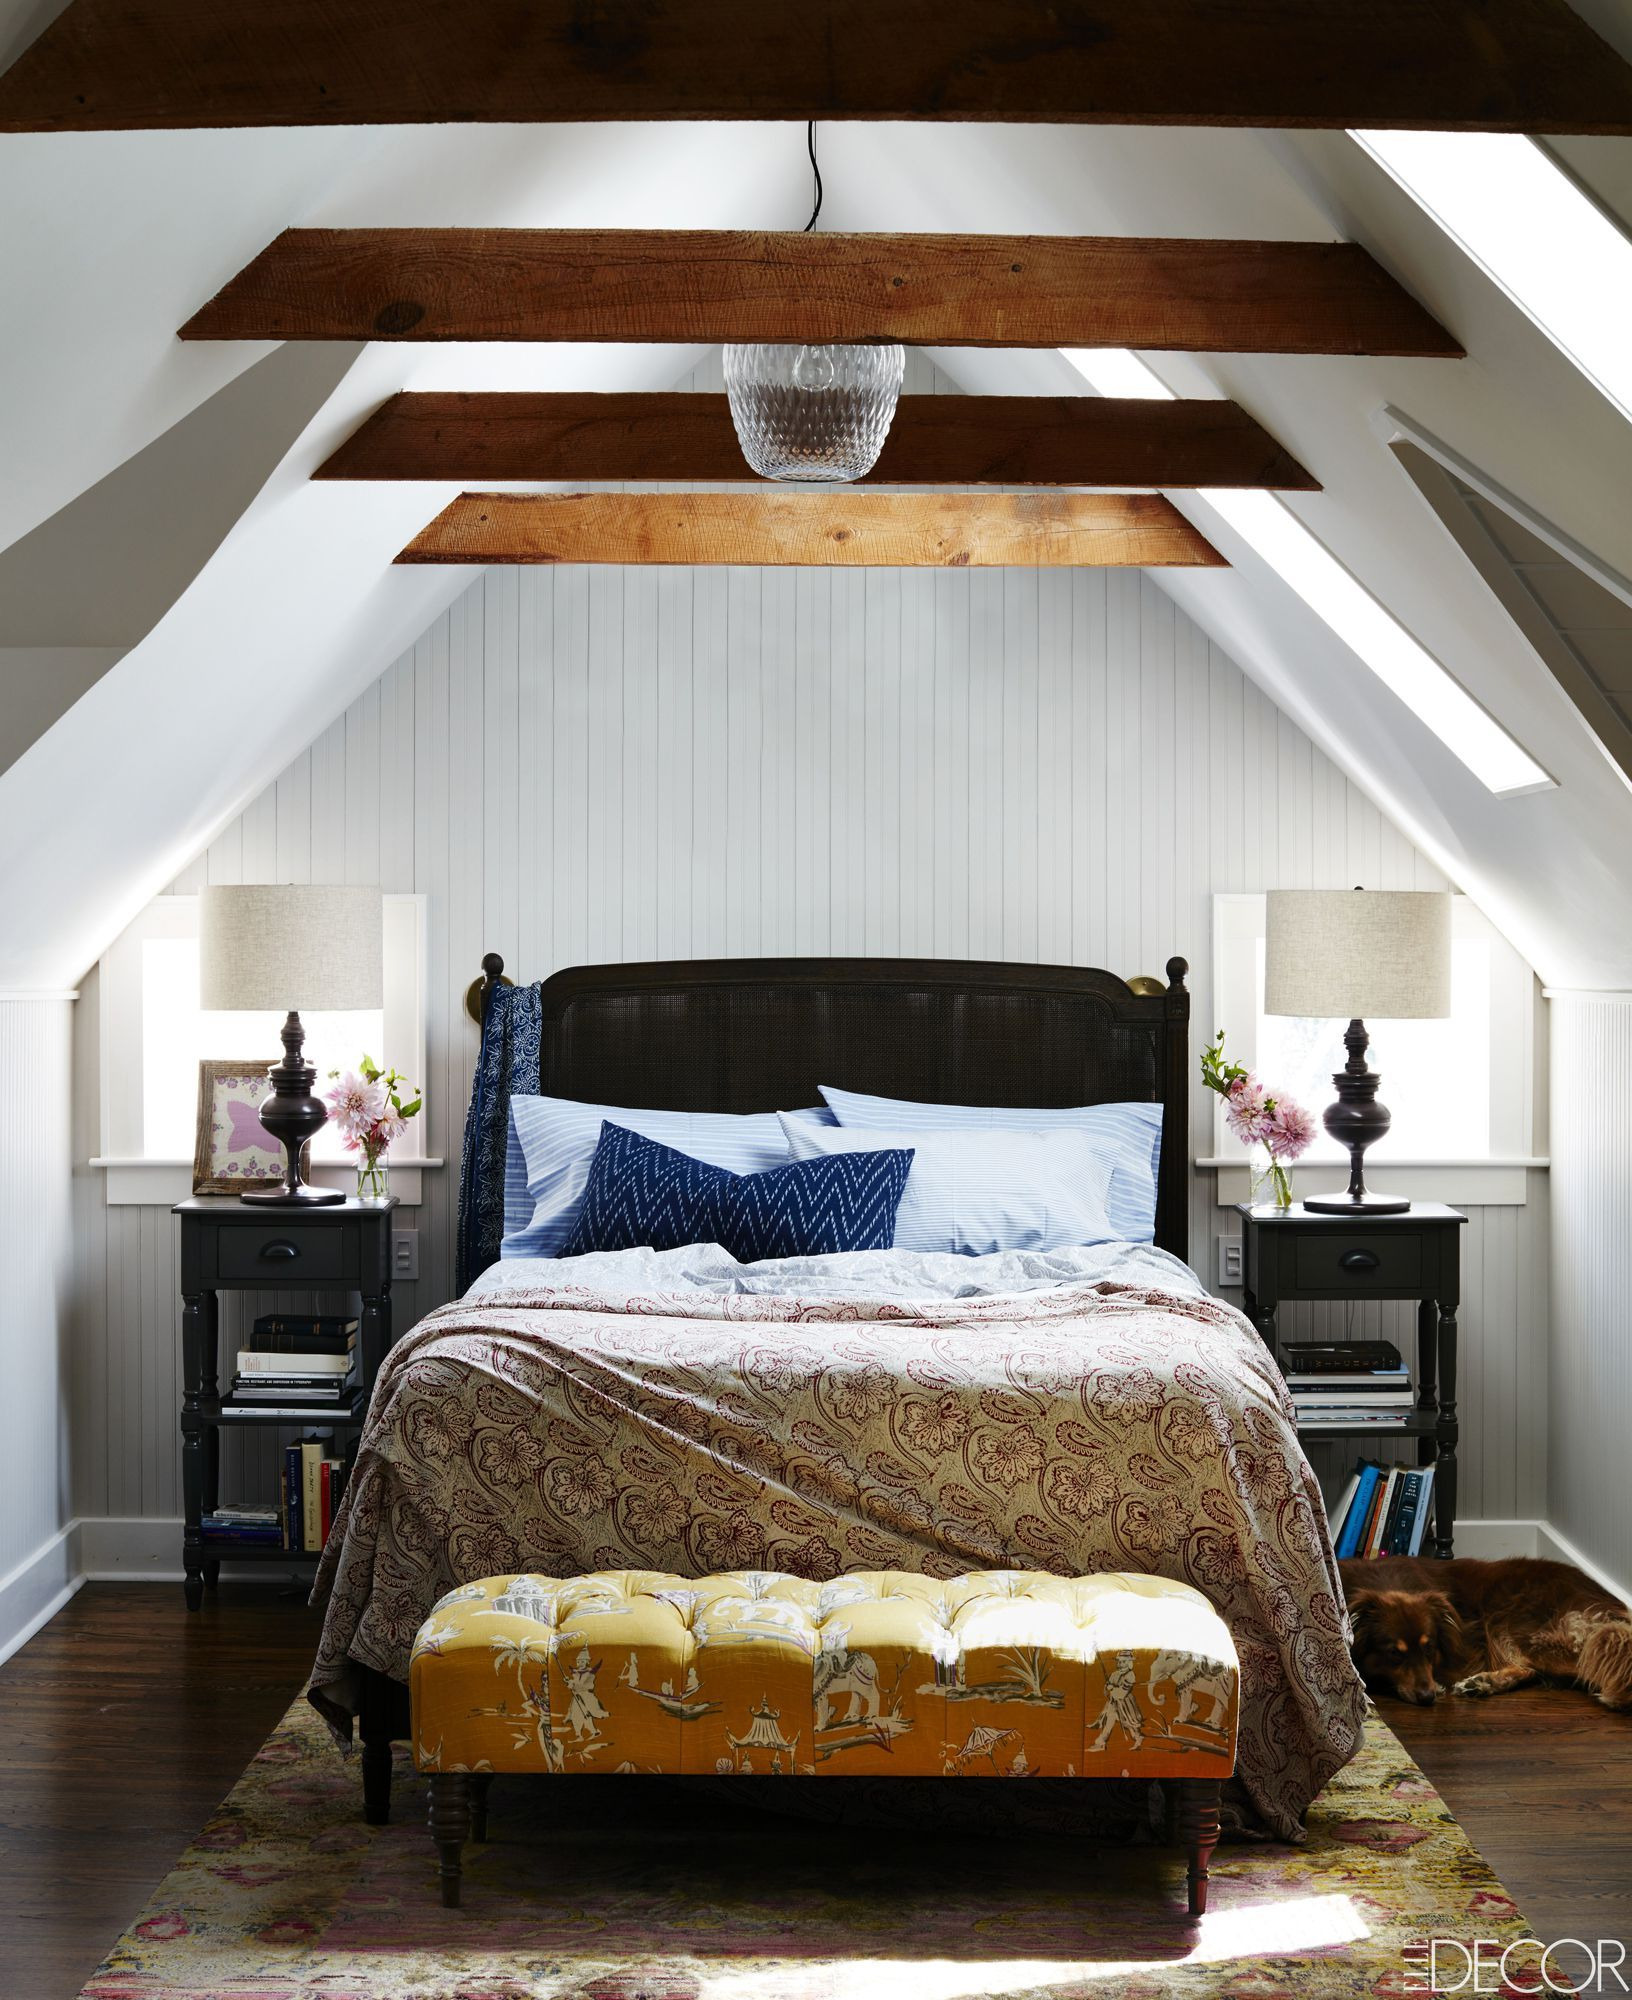 Bedroom Ideas for Small Bedrooms Inspirational 55 Small Bedroom Design Ideas Decorating Tips for Small